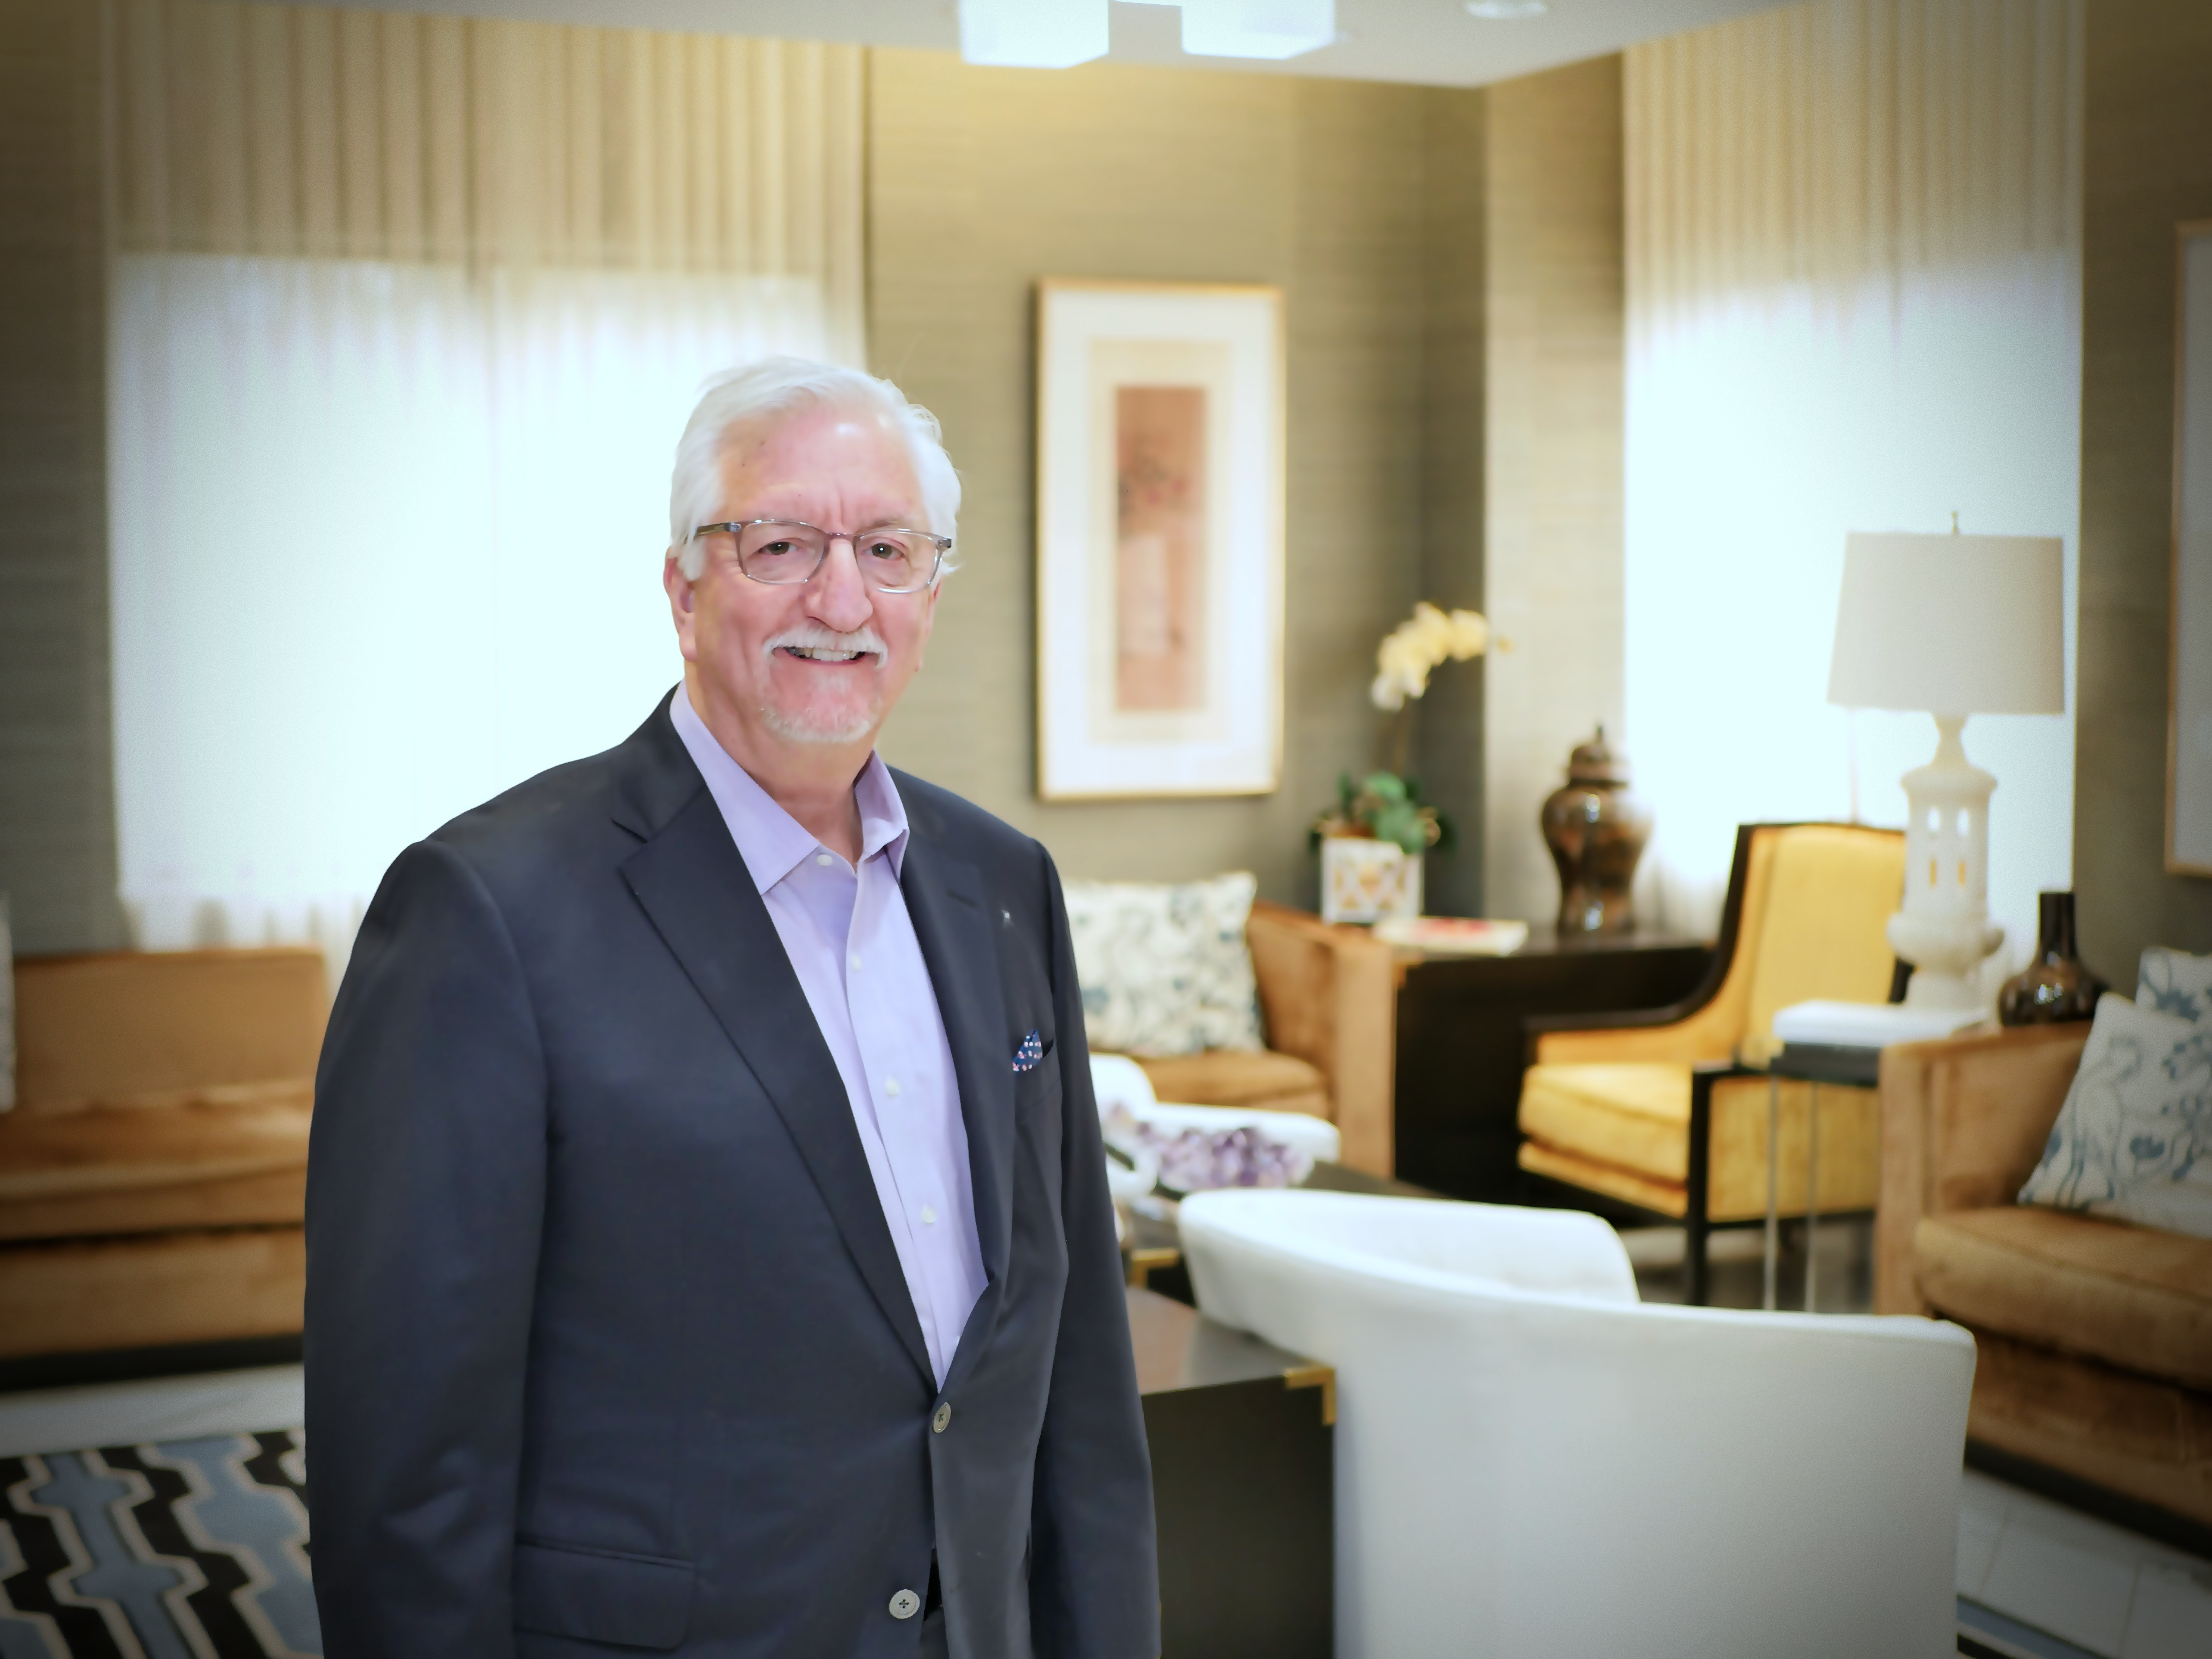 Dennis Simmons, CEO of Elite Surgical Center